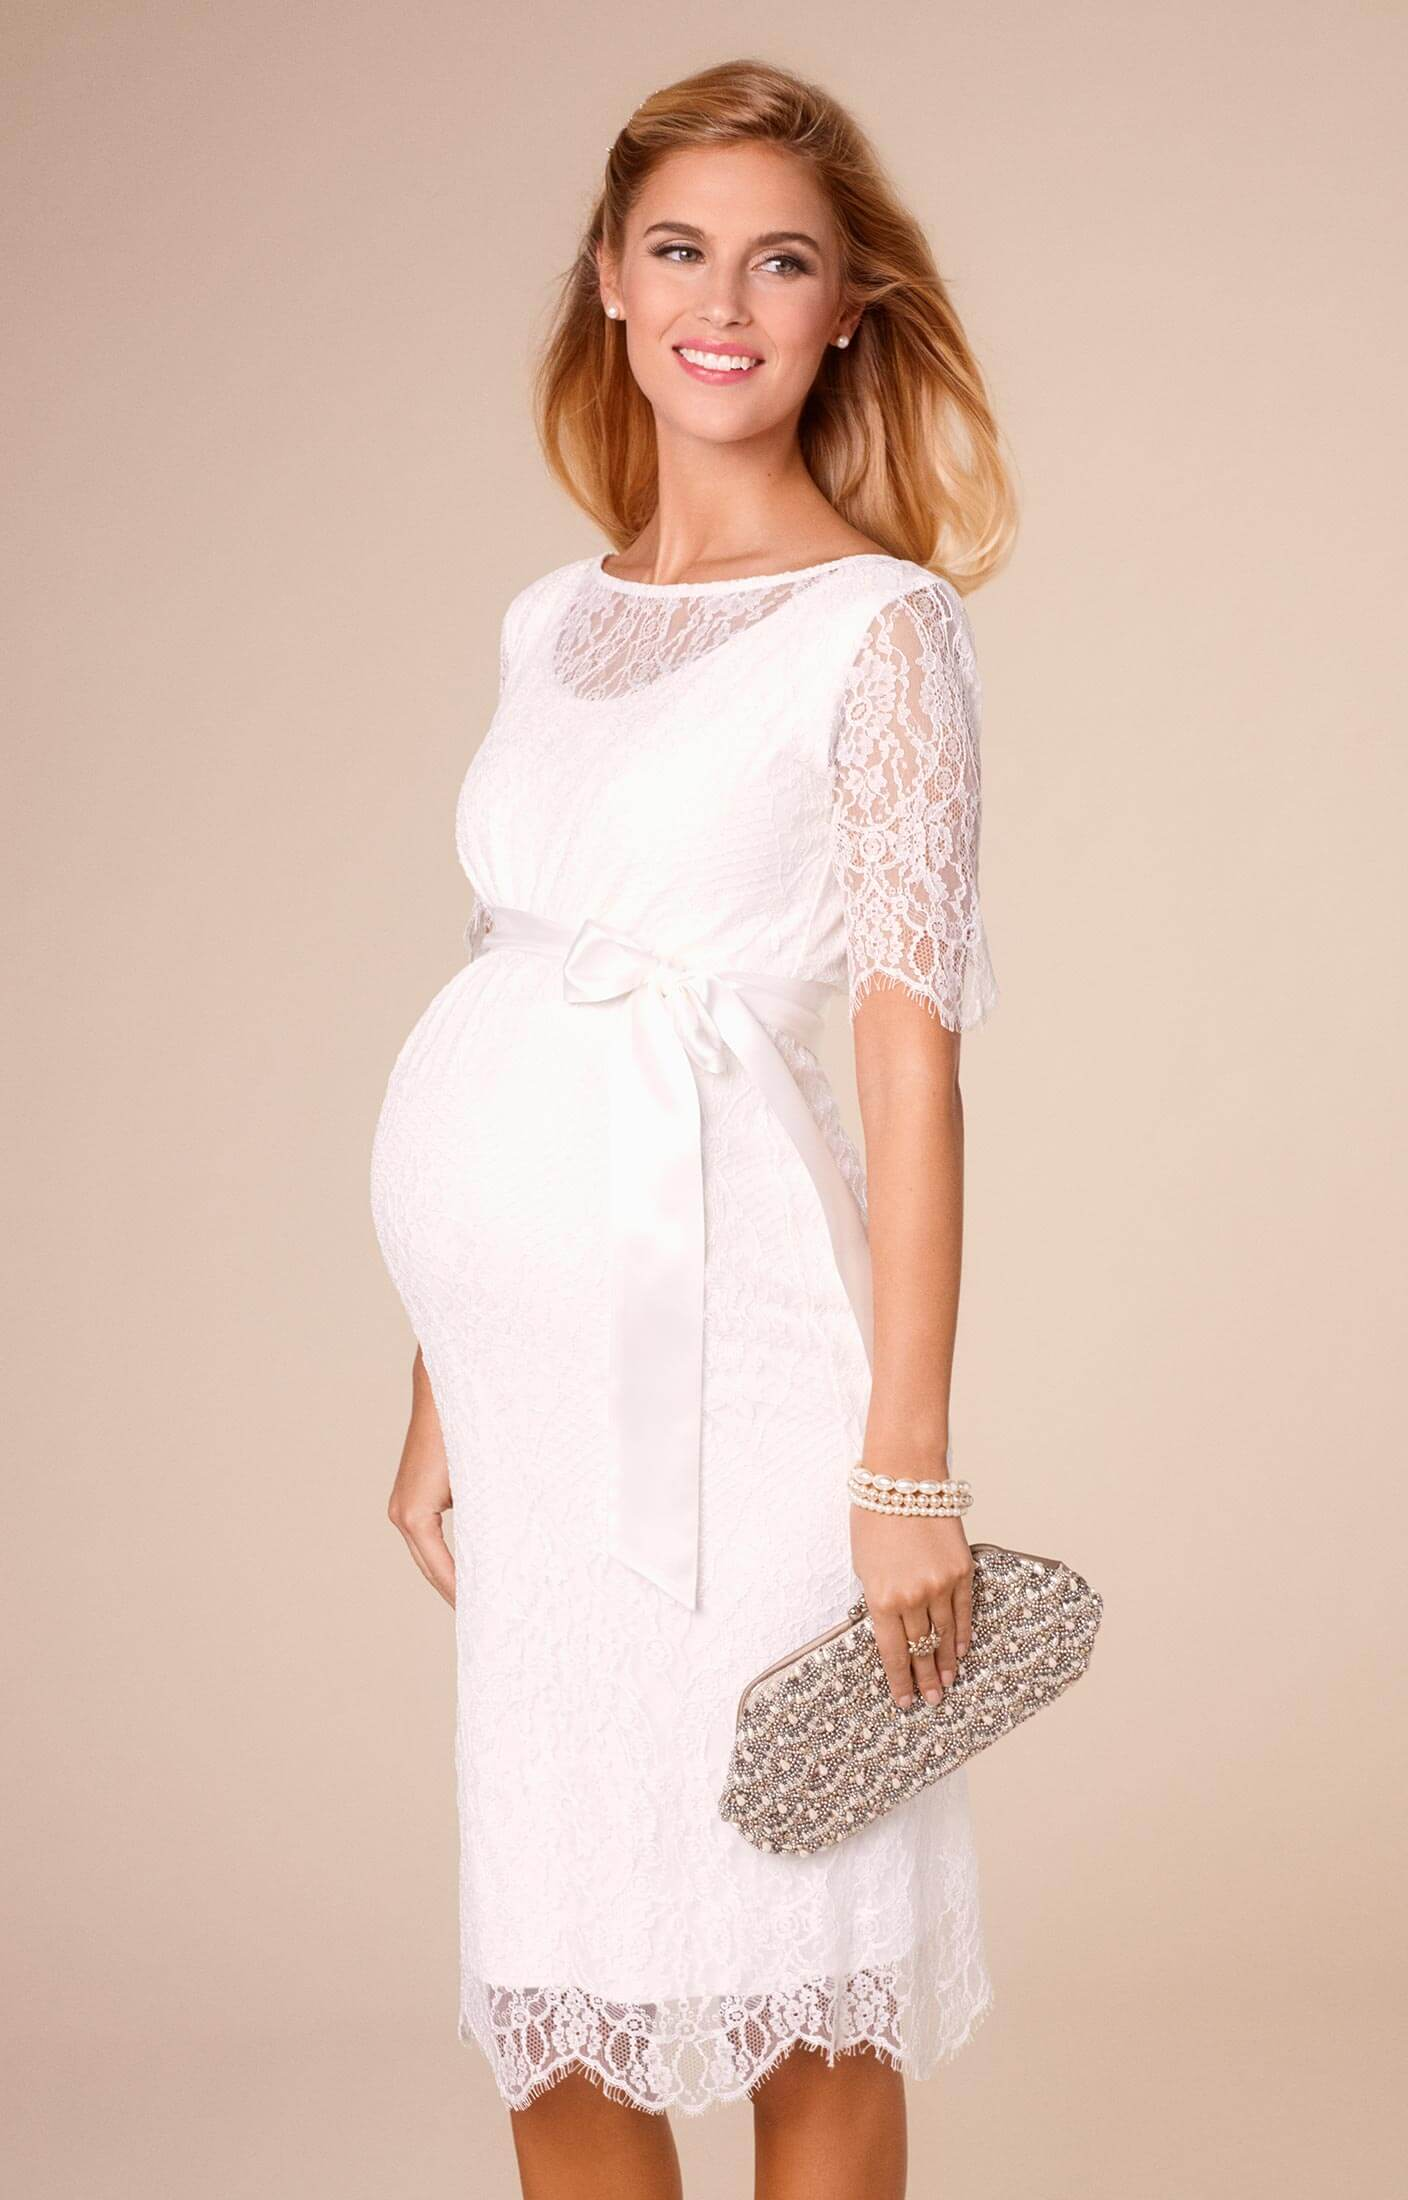 Starla Maternity Wedding Dress Short Ivory Maternity